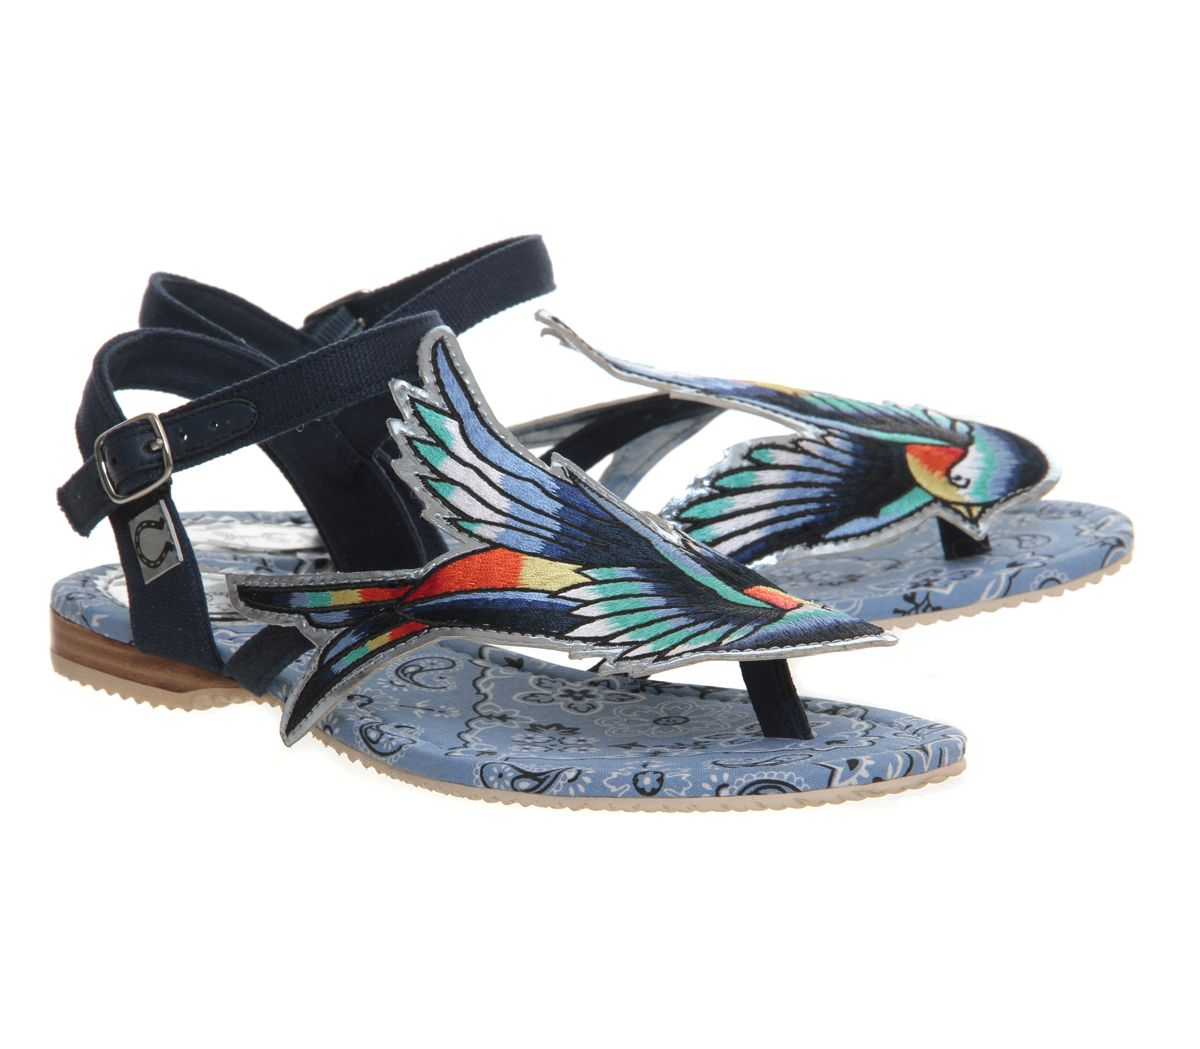 Vegan bluebird sandals from Miss L Fire at OFFICE.co.uk